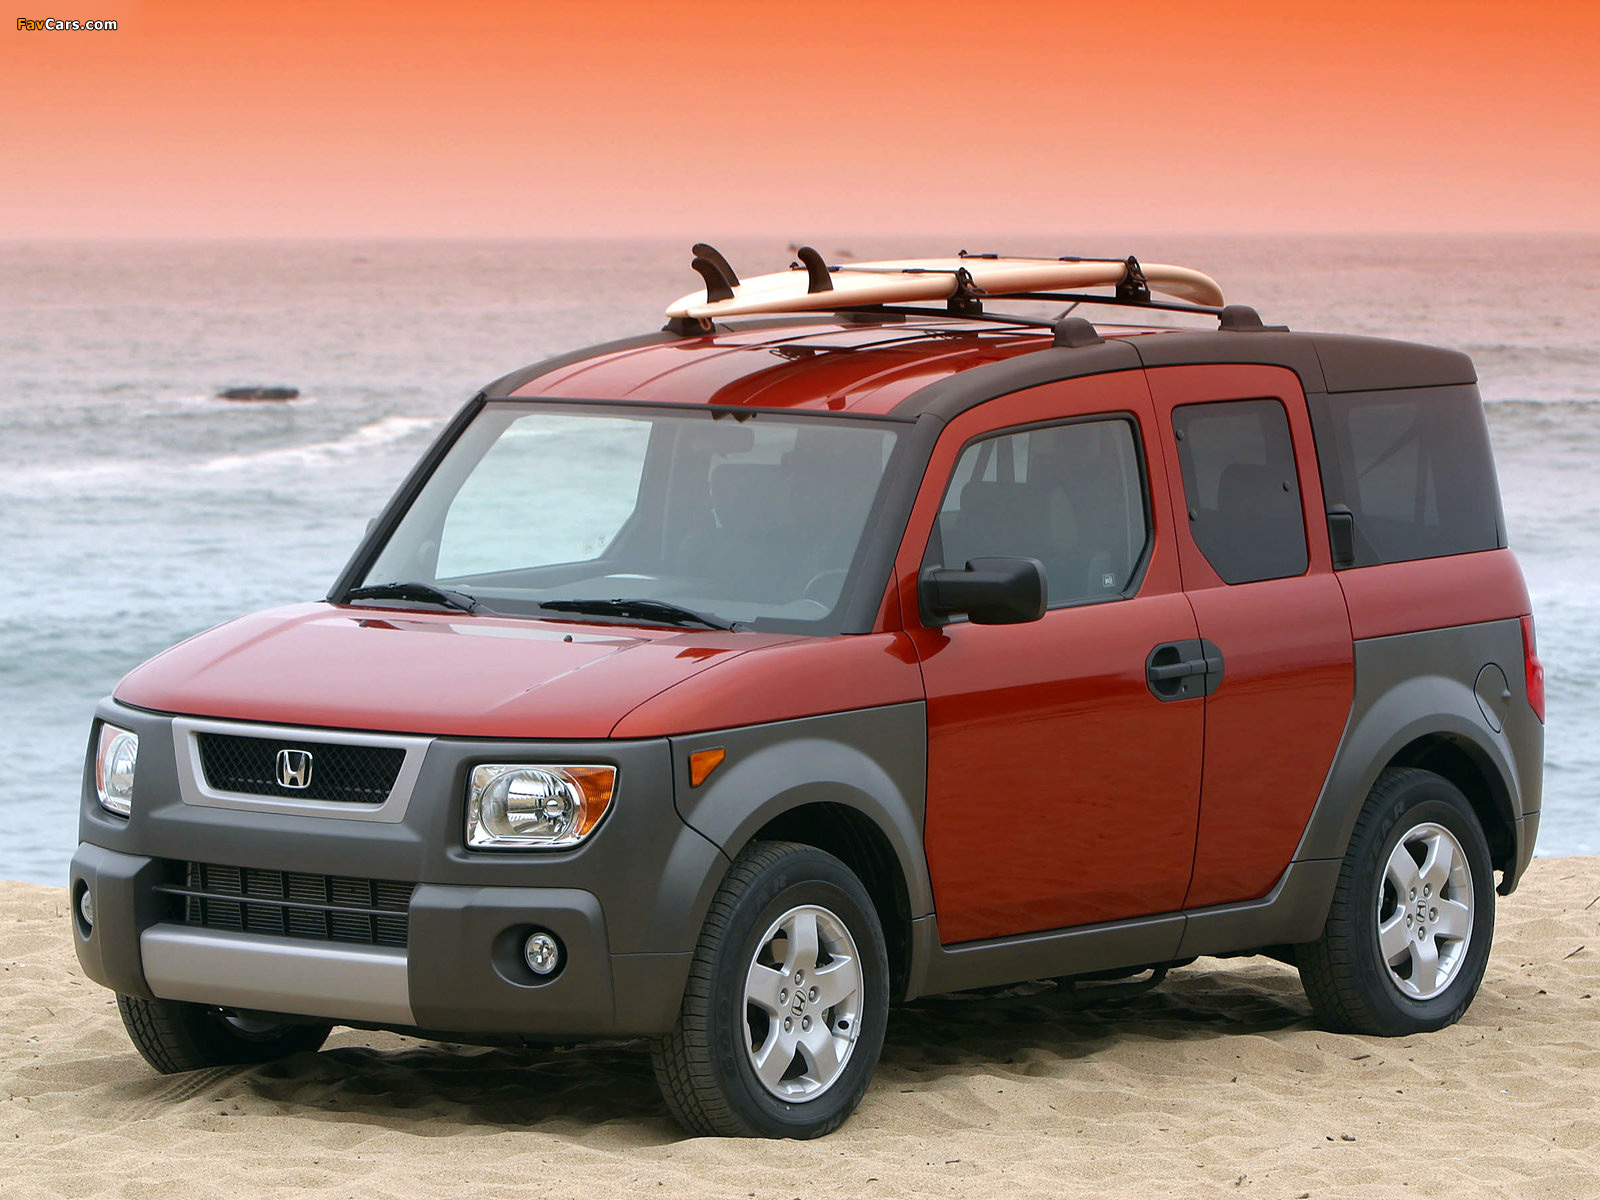 Honda Element 2003 photo - 1